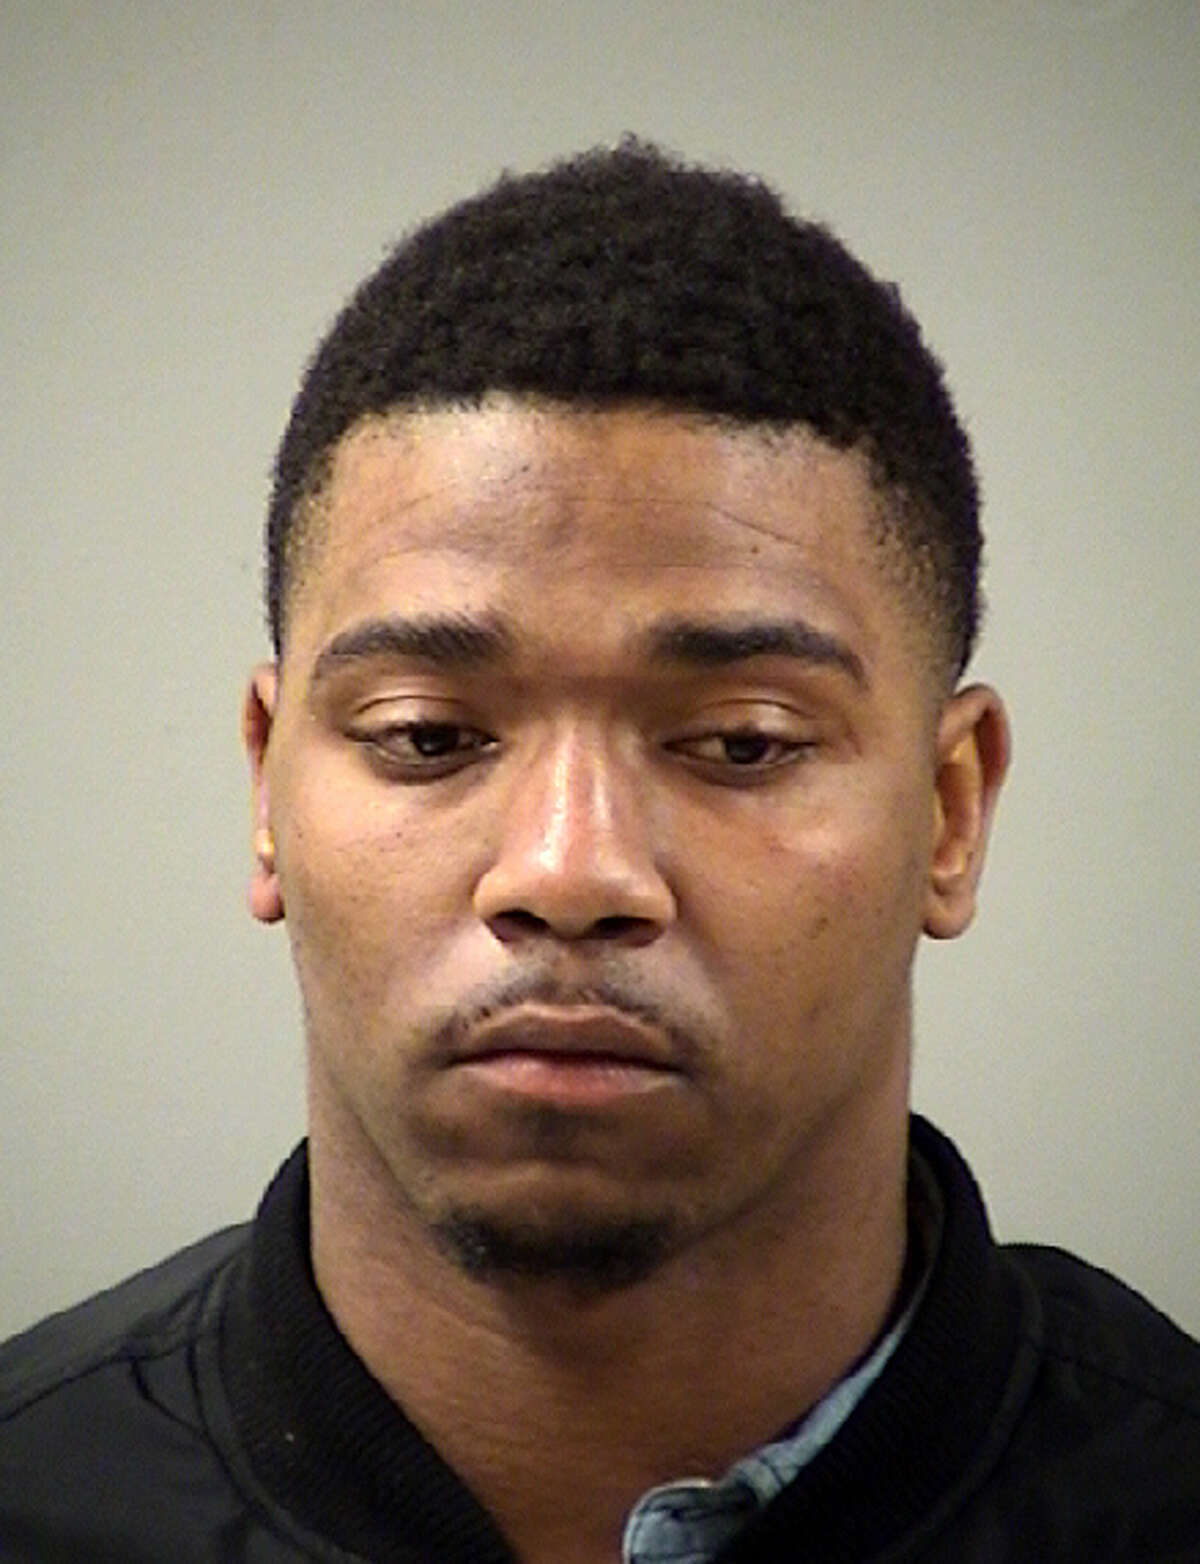 Trevone Boykin was previously arrested in San Antonio in December 2015 for allegedly assaulting a police officer.